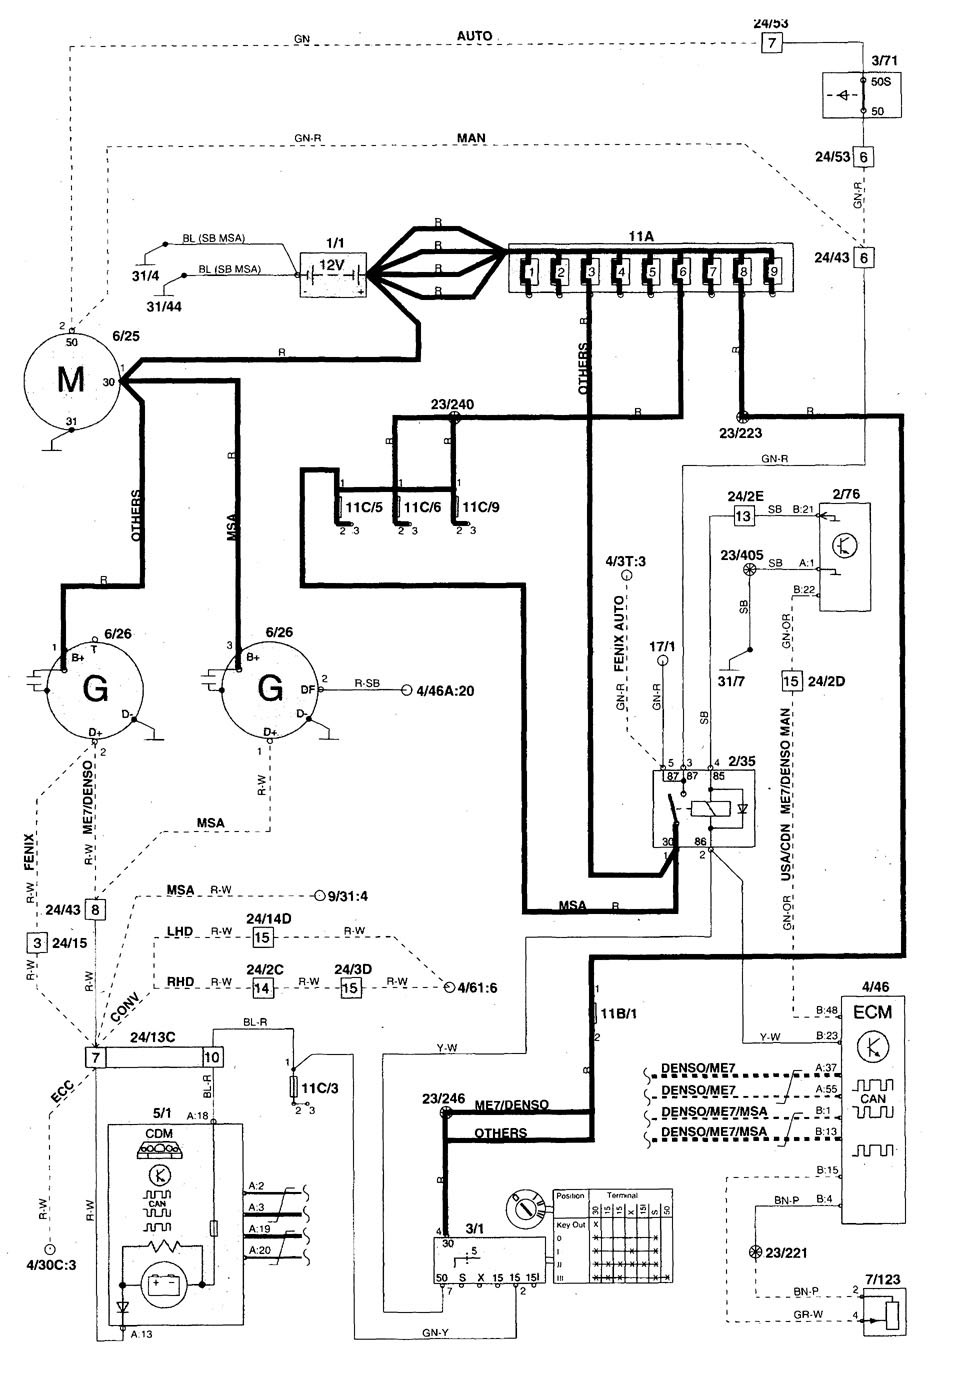 Volvo S70 (1999 - 2000) - wiring diagrams - charging system -  Carknowledge.info | Volvo S70 Wiring Diagram |  | Carknowledge.info